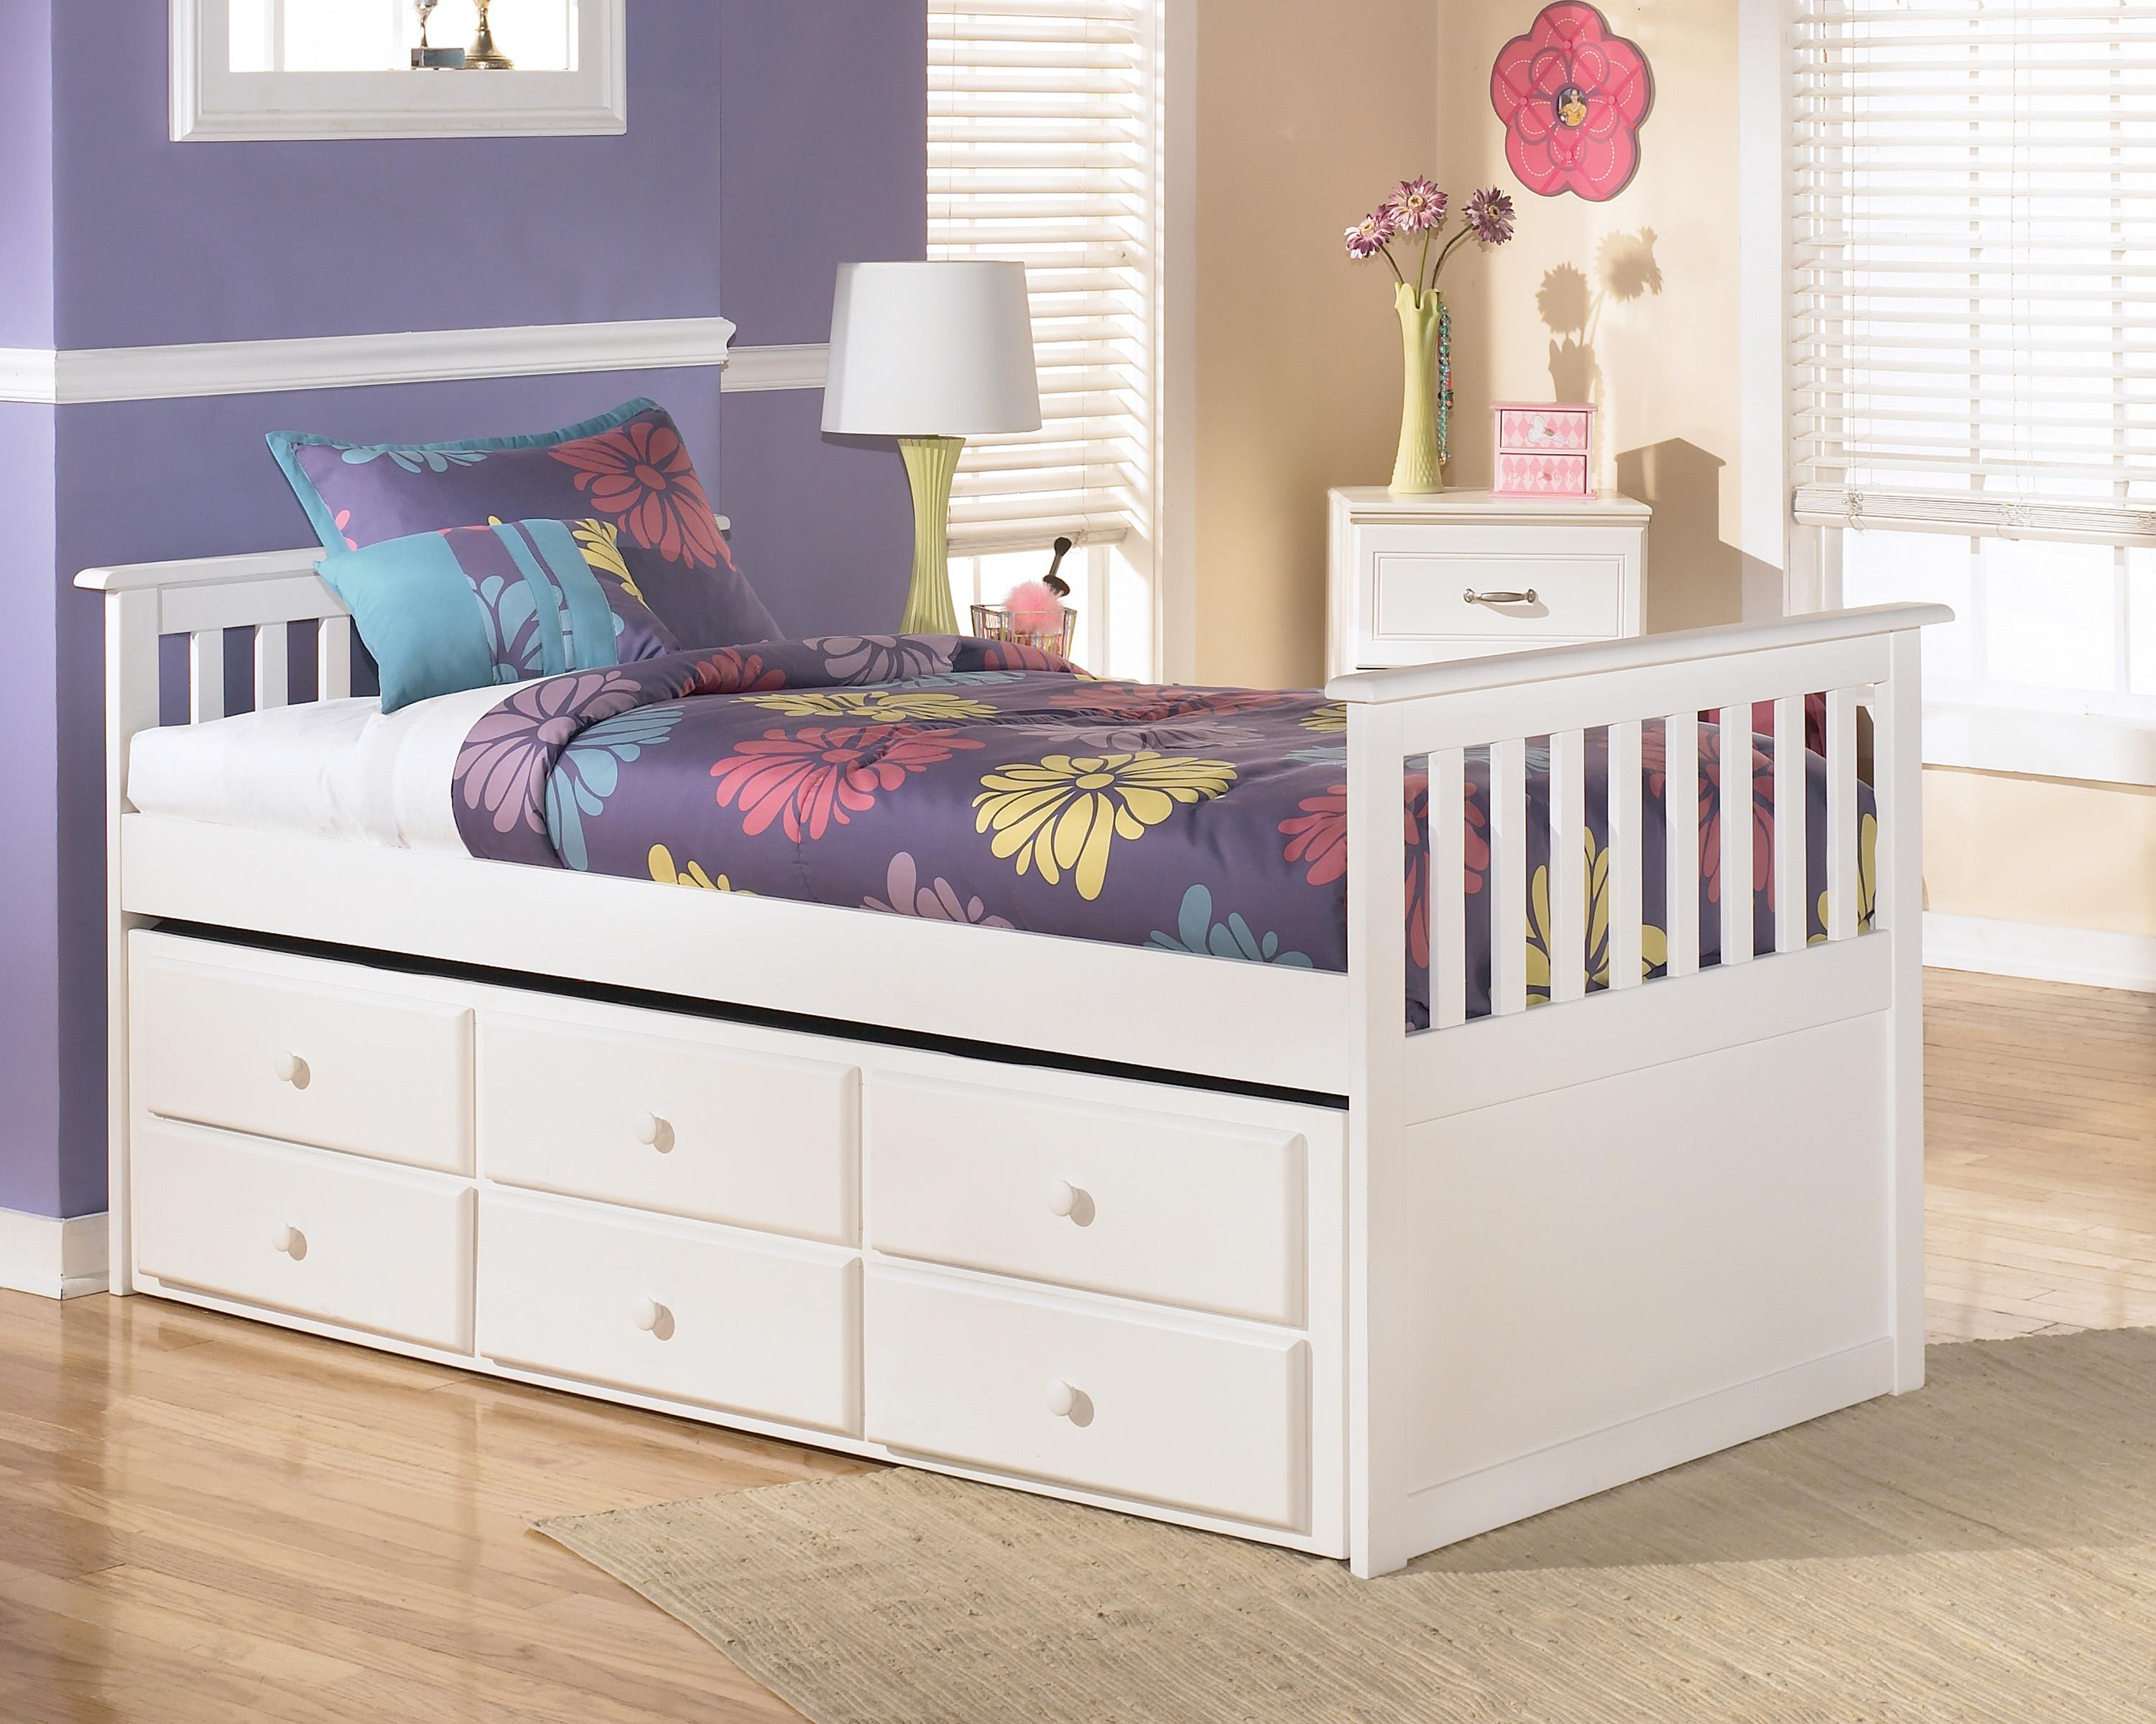 Signature Design by Ashley Lulu Twin Bed with Trundle - Item Number: B102-53+50T+50D+83